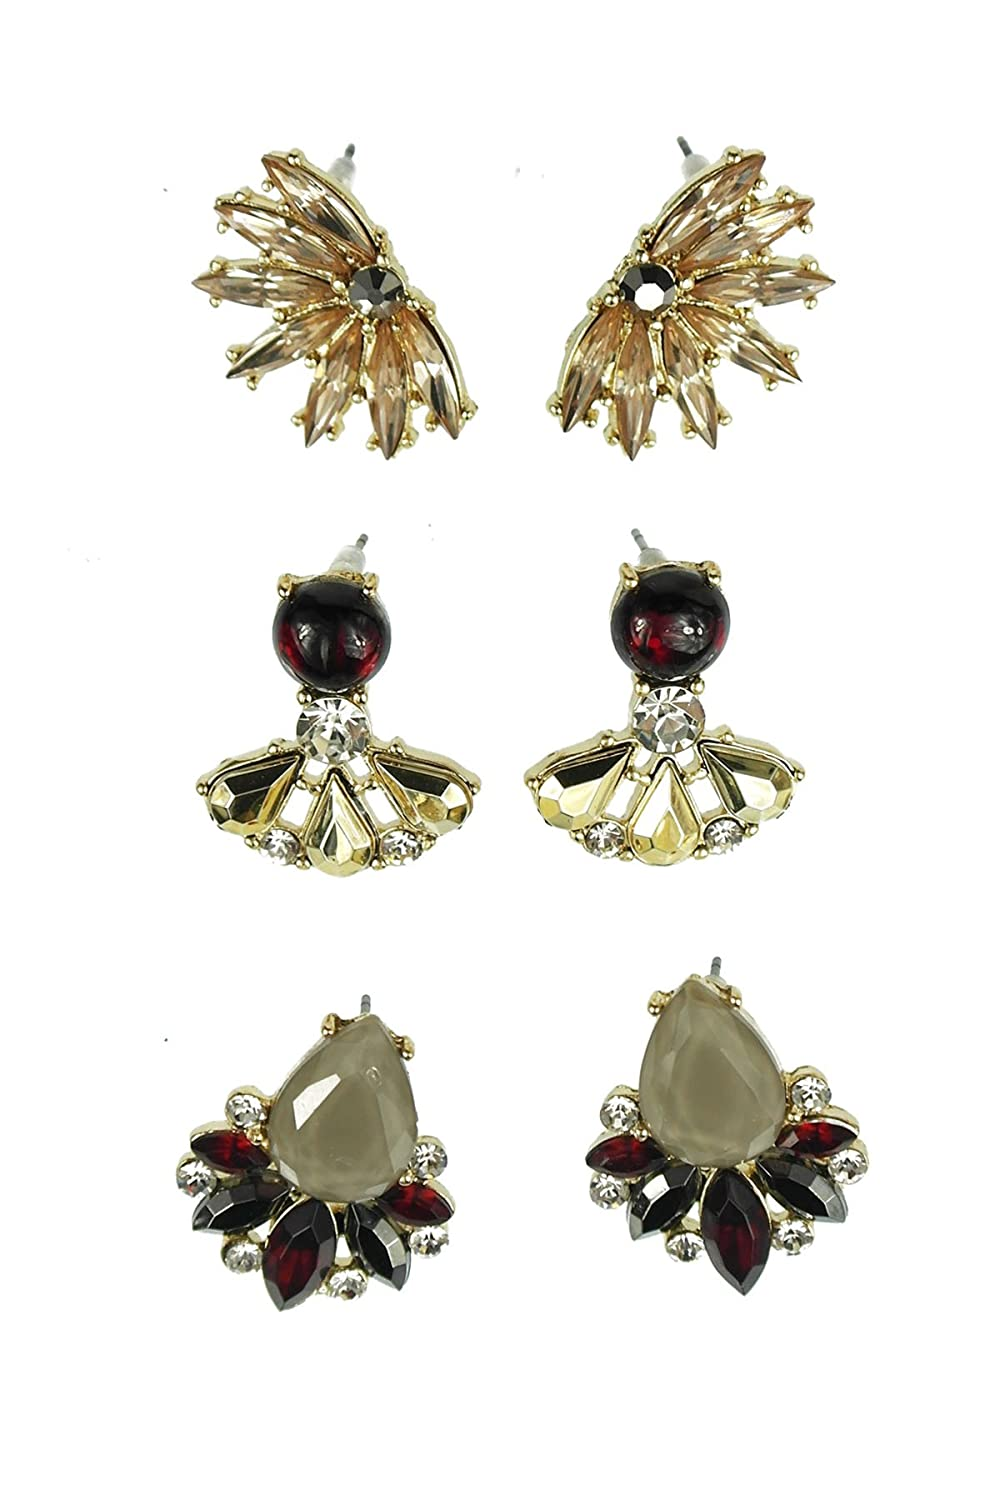 Three Vintage Gold-tone and Burgundy Crystal Style Assorted Stud Earrings Set